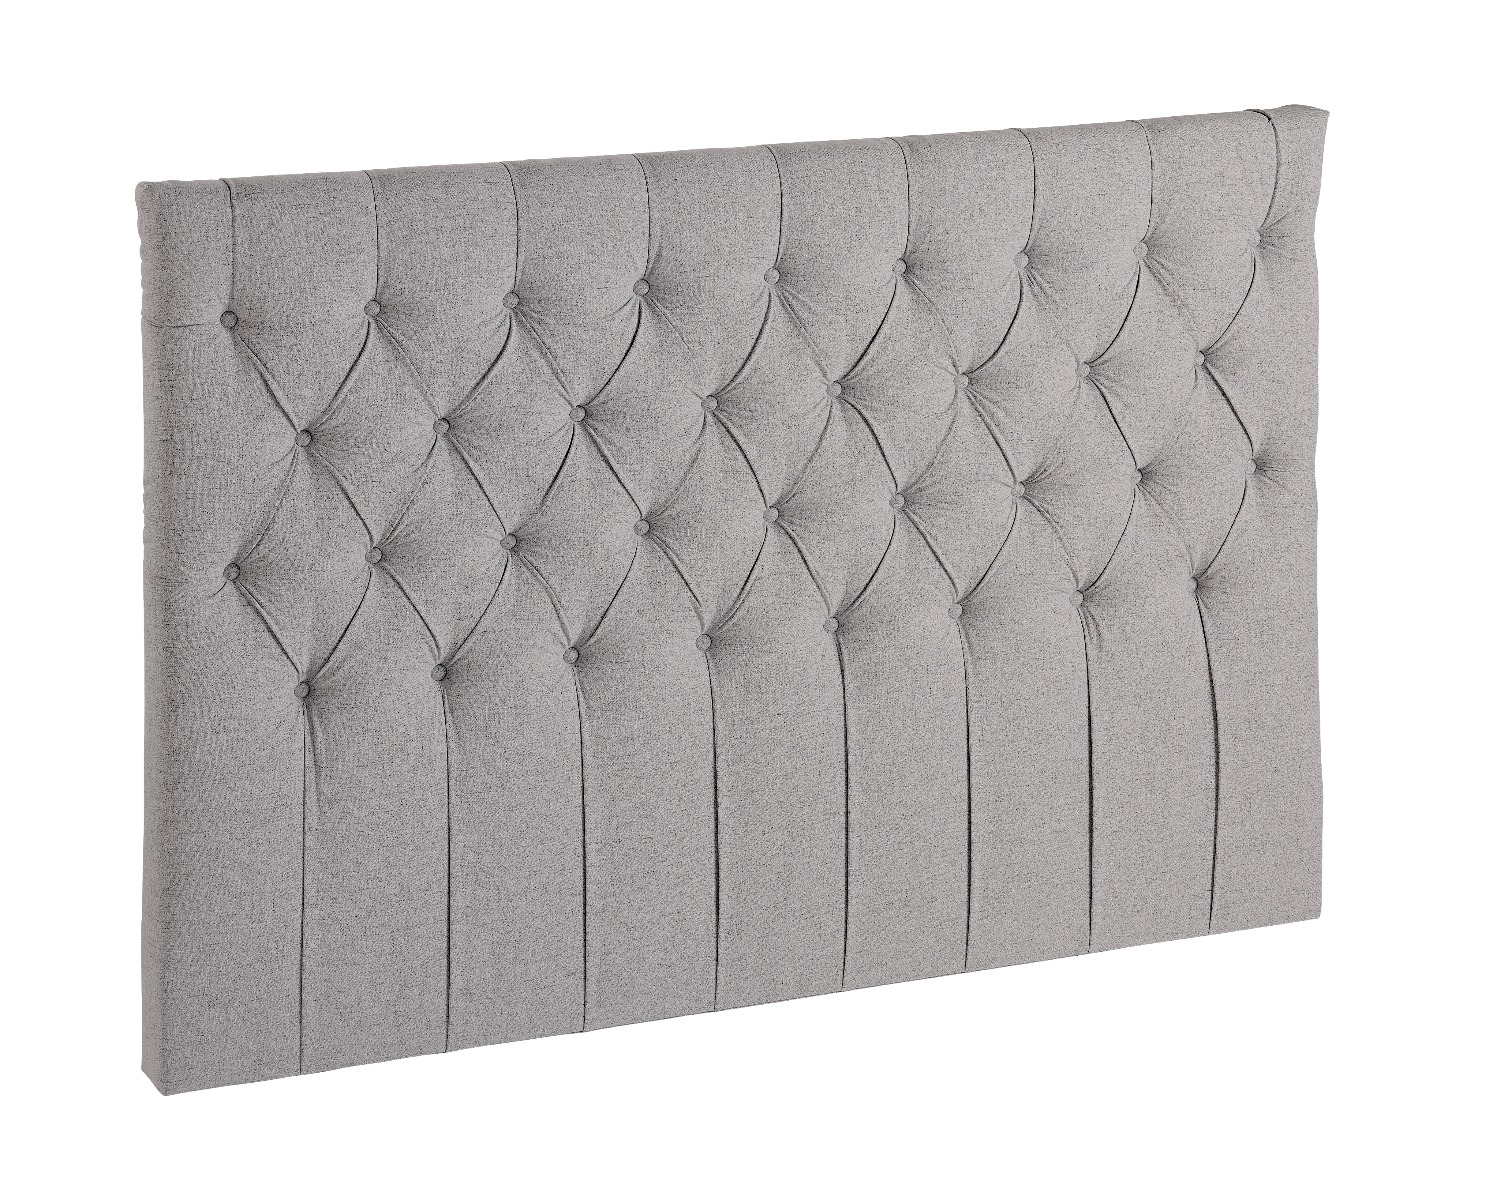 Image of Senses Lux Gavl Chesterfield - 180 x 120 (6871)